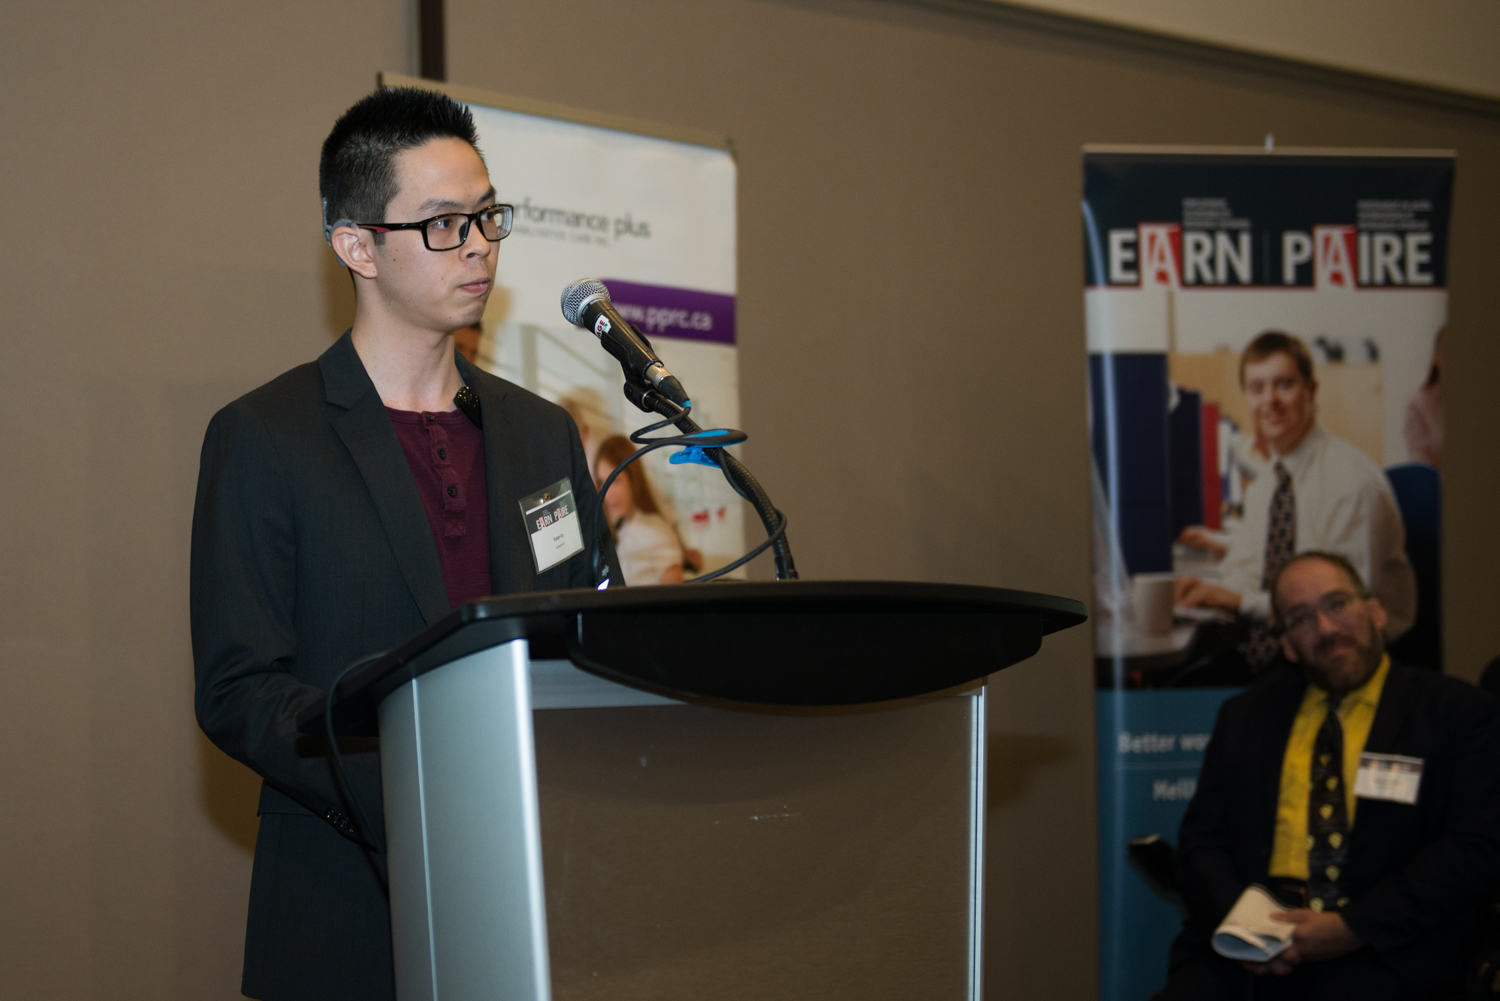 Yvan Le speaking at 2019 EARN conference podium